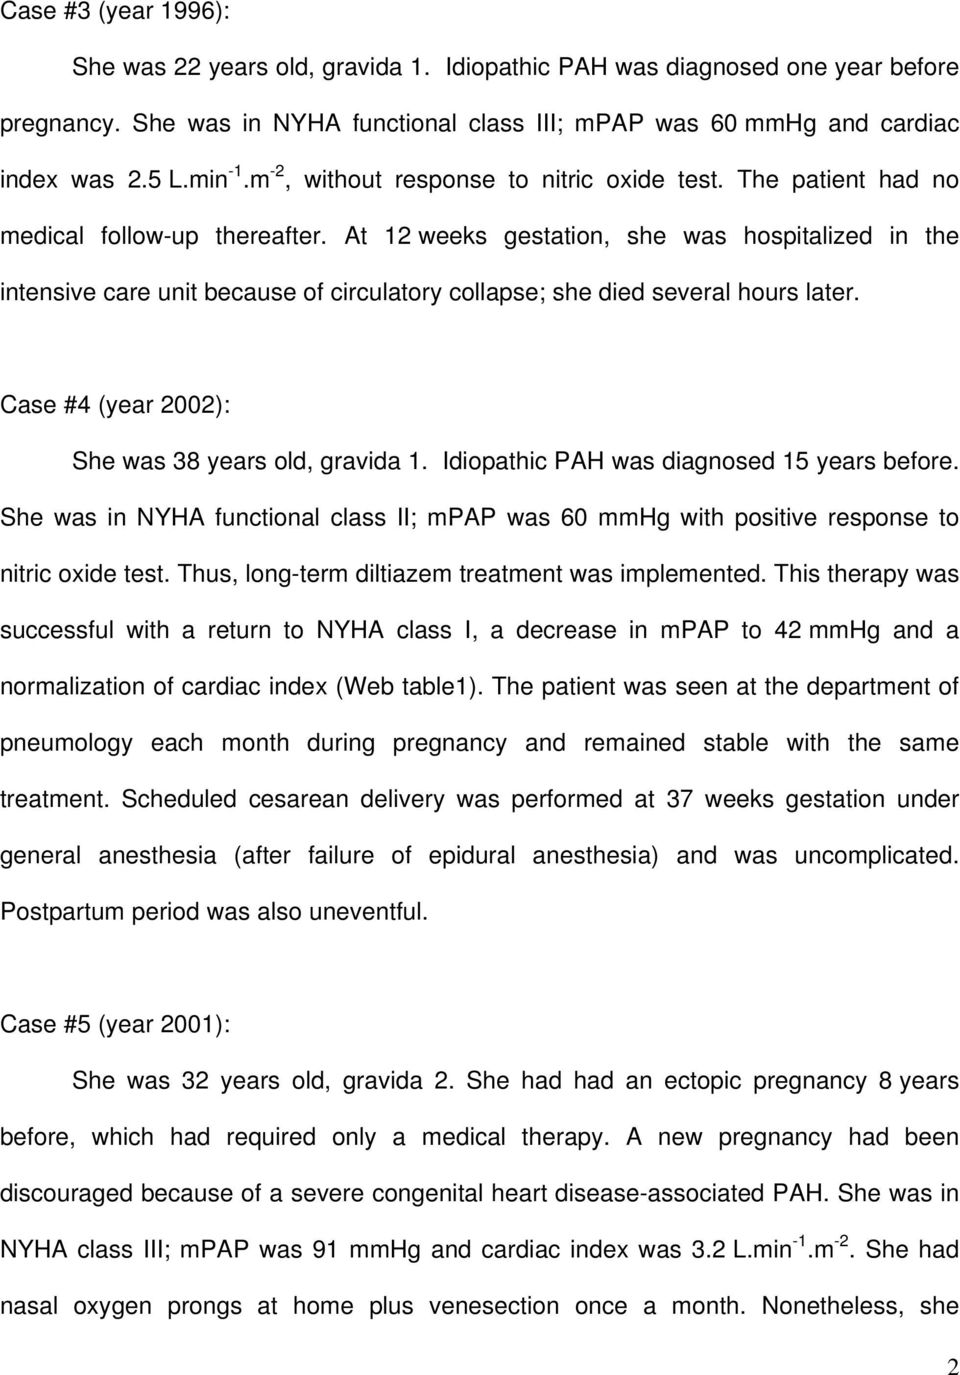 At 12 weeks gestation, she was hospitalized in the intensive care unit because of circulatory collapse; she died several hours later. Case #4 (year 2002): She was 38 years old, gravida 1.